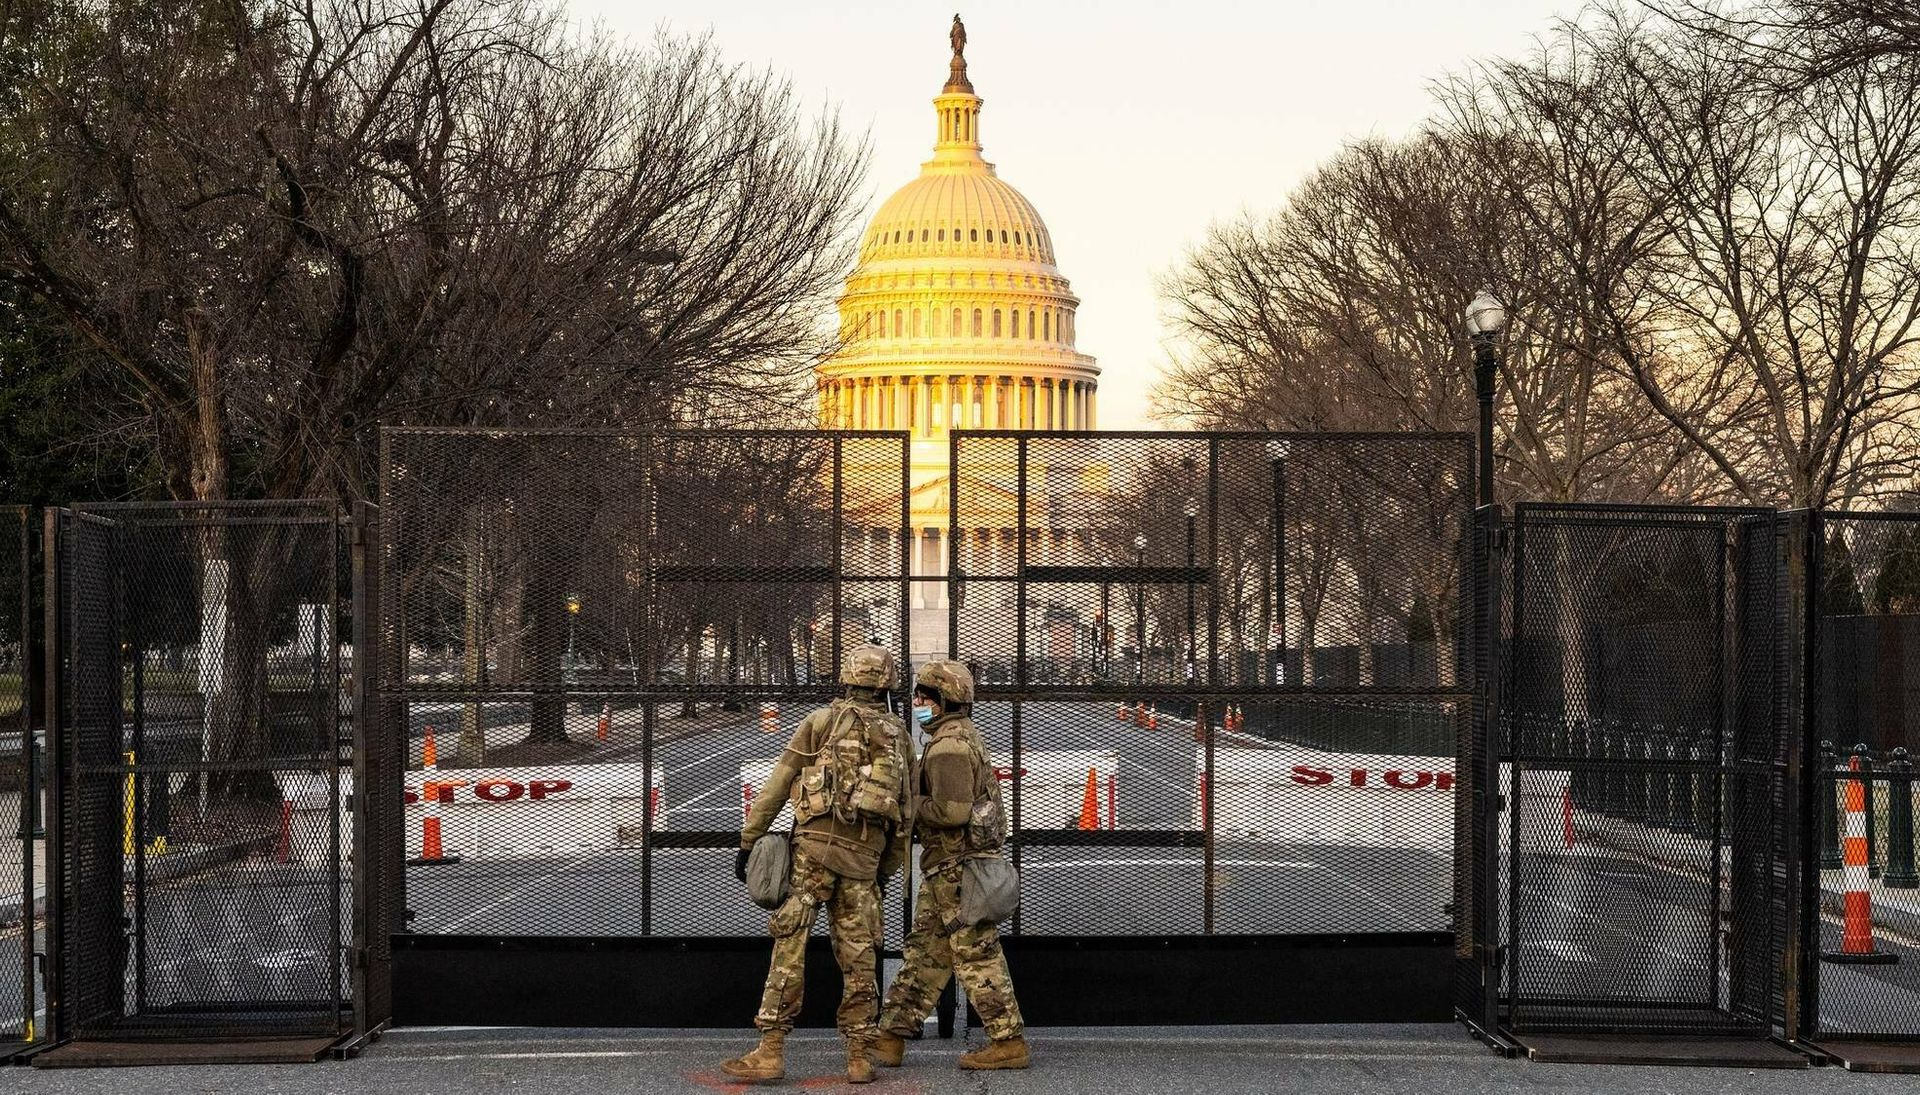 Two National Guard members stand in front of a fence surrounding the U.S. Capitol building in Washington, D.C.